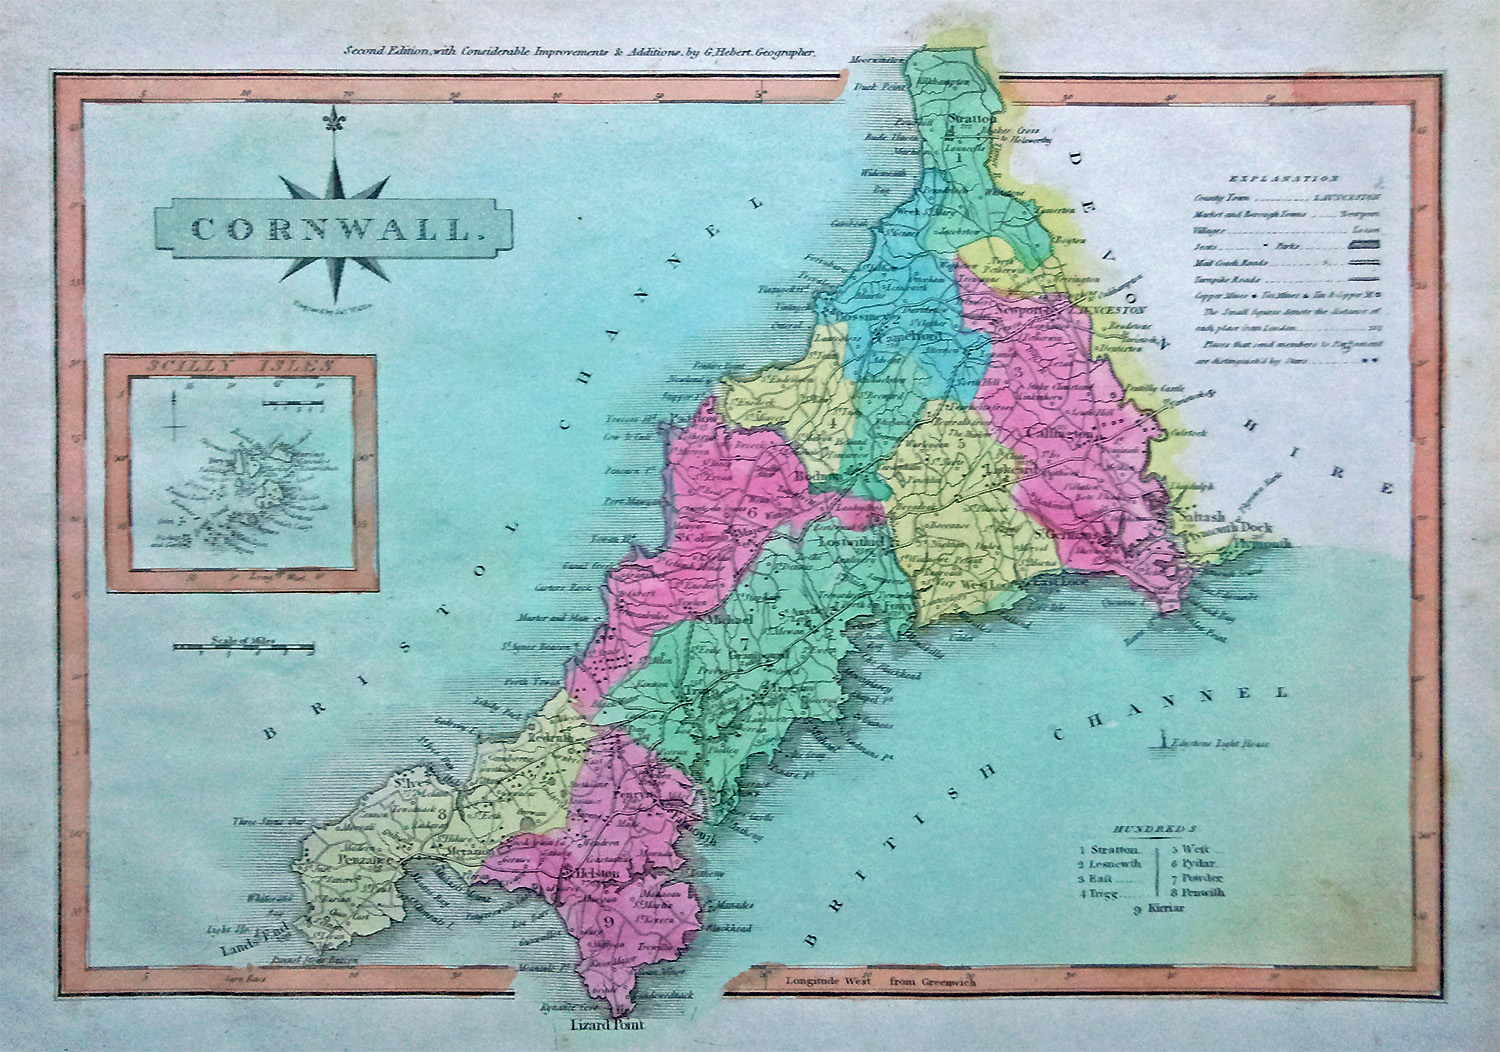 Wallis map of Cornwall dated 1816